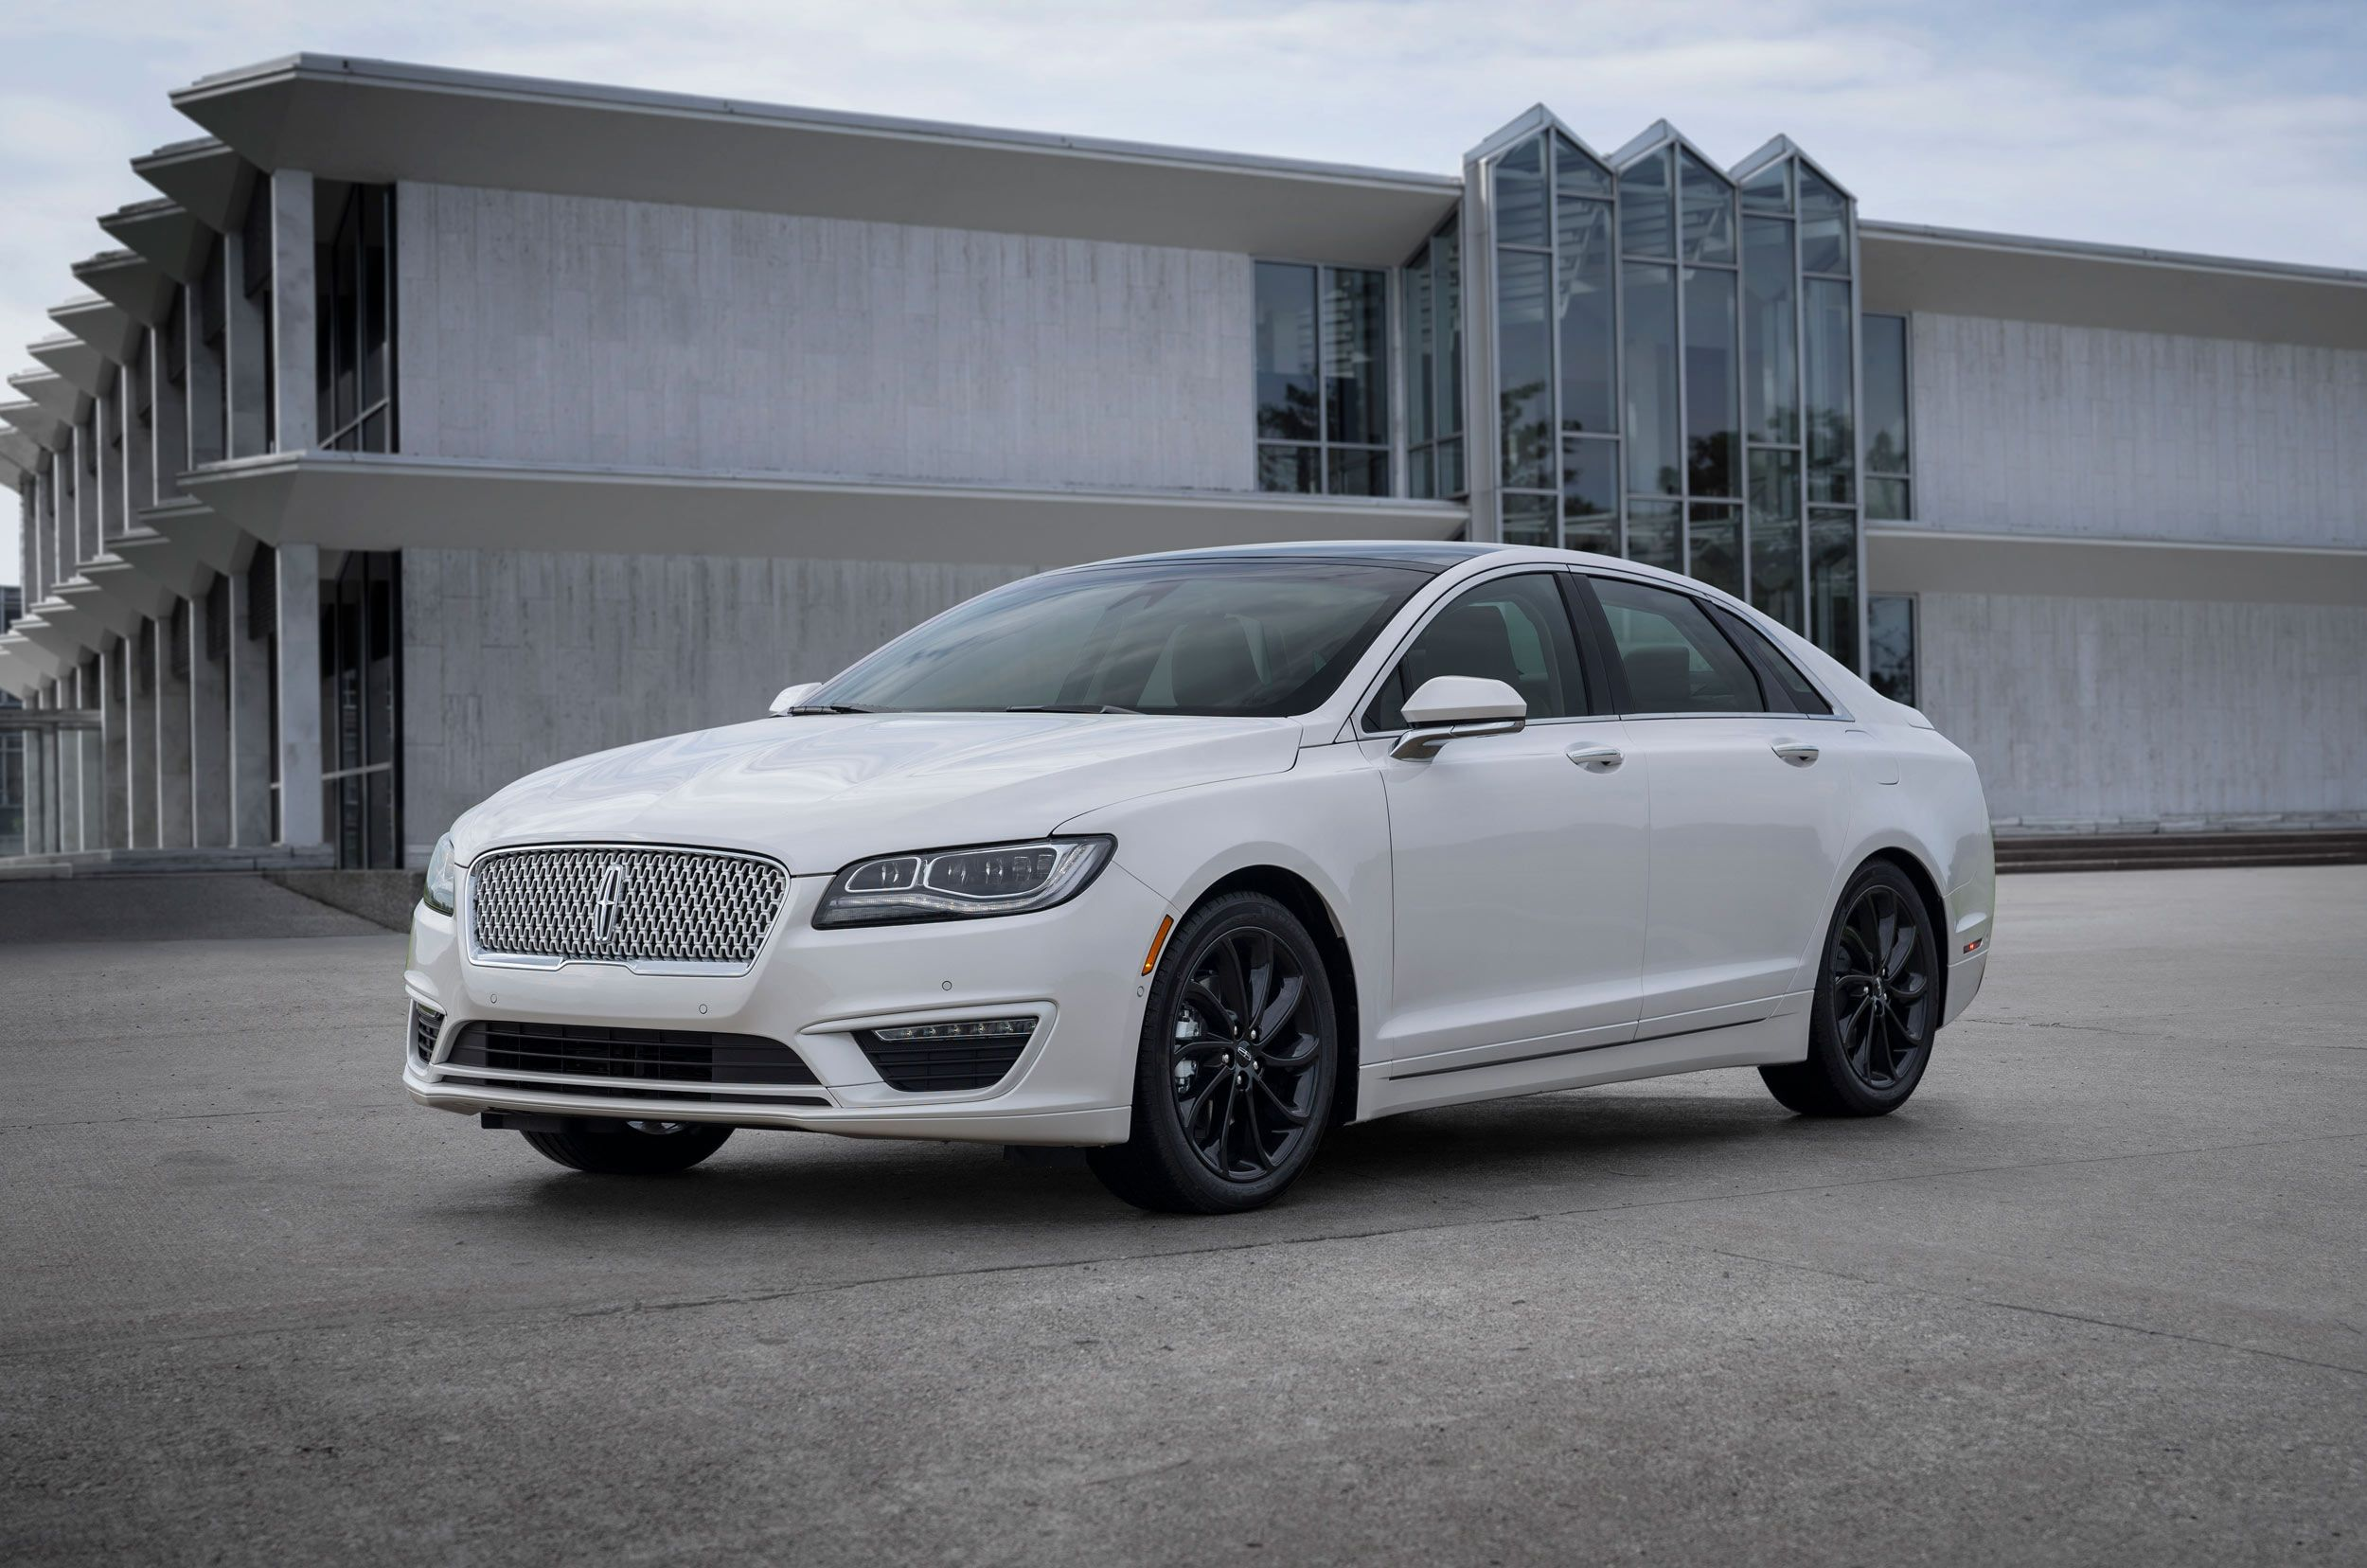 2020 Lincoln MKZ Research New